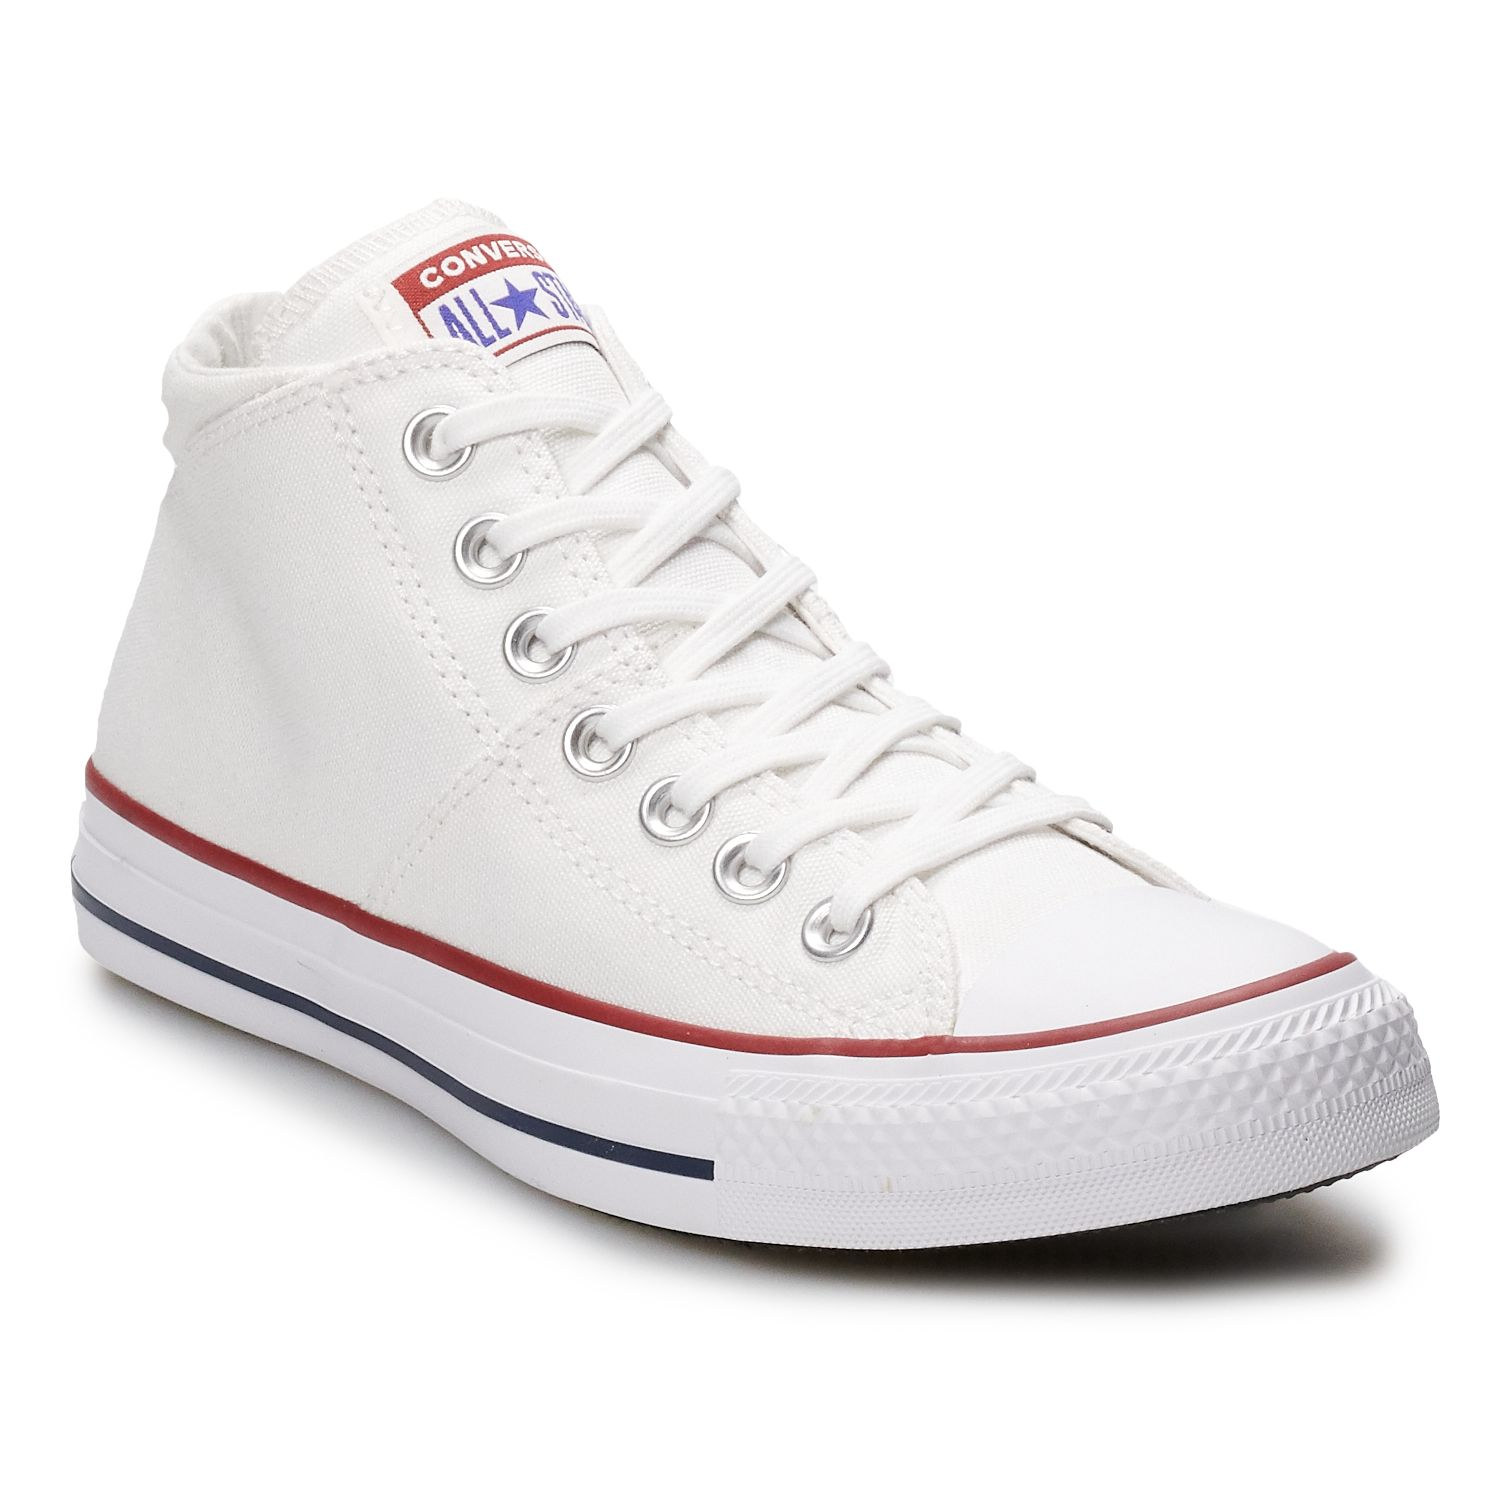 converse clothing, shoes \u0026 accessories kohl\u0027s  women\u0027s converse chuck taylor all star madison mid sneakers